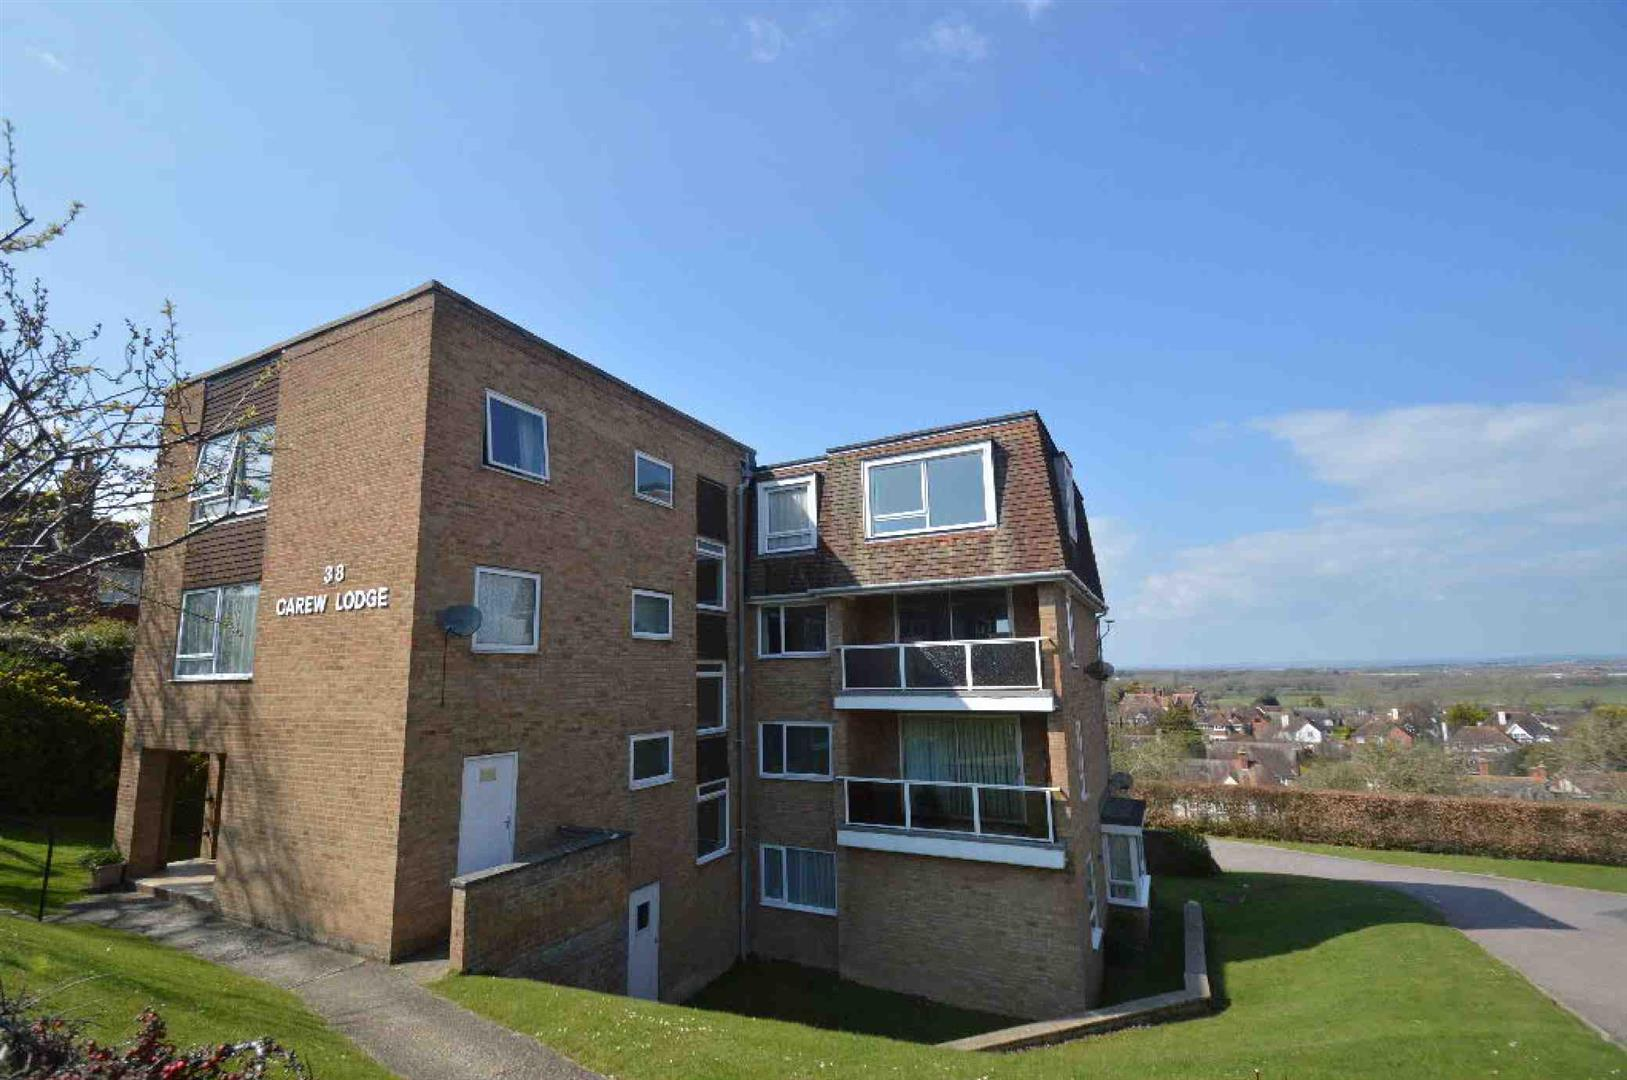 2 Bedrooms Flat for sale in Carew Road, EASTBOURNE